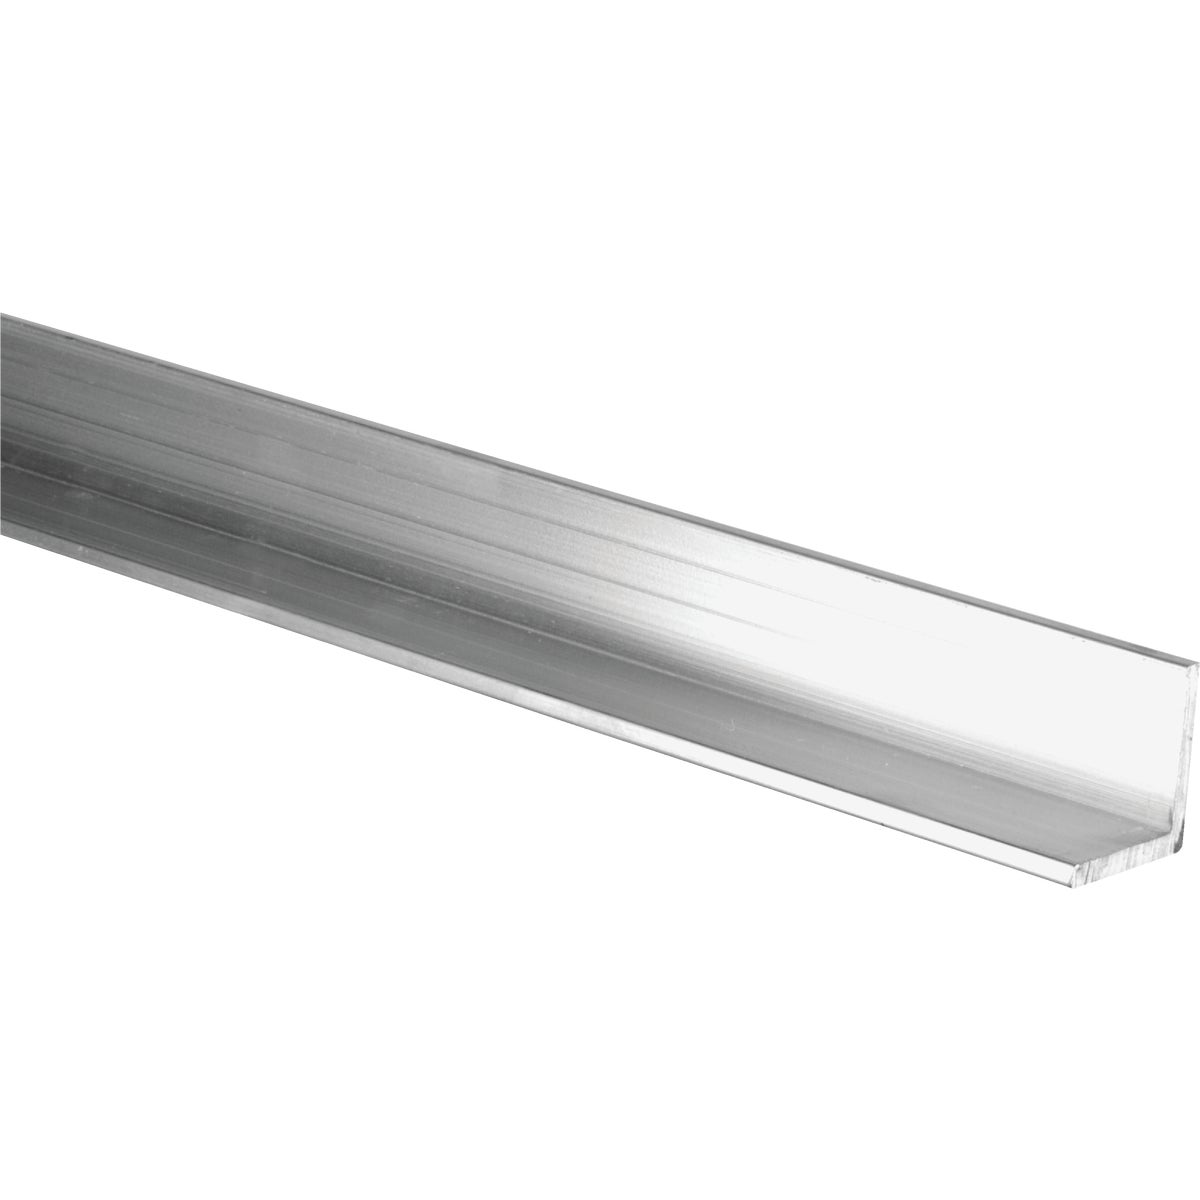 1/8X1X8' ALUM ANGLE - N258368 by National Mfg Co